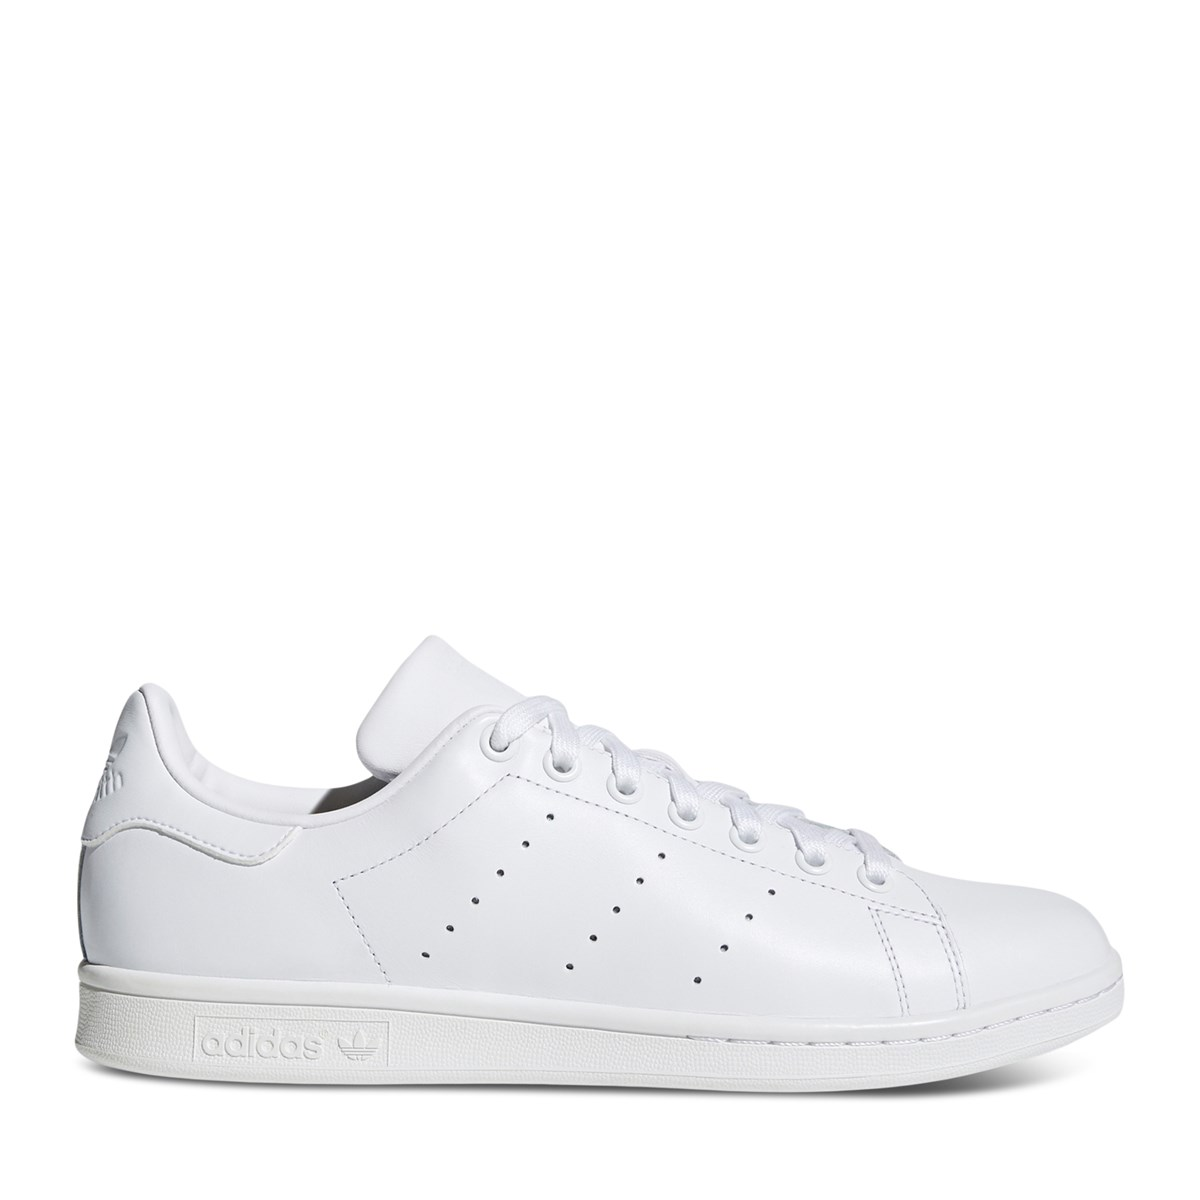 Stan Smith Sneakers in White